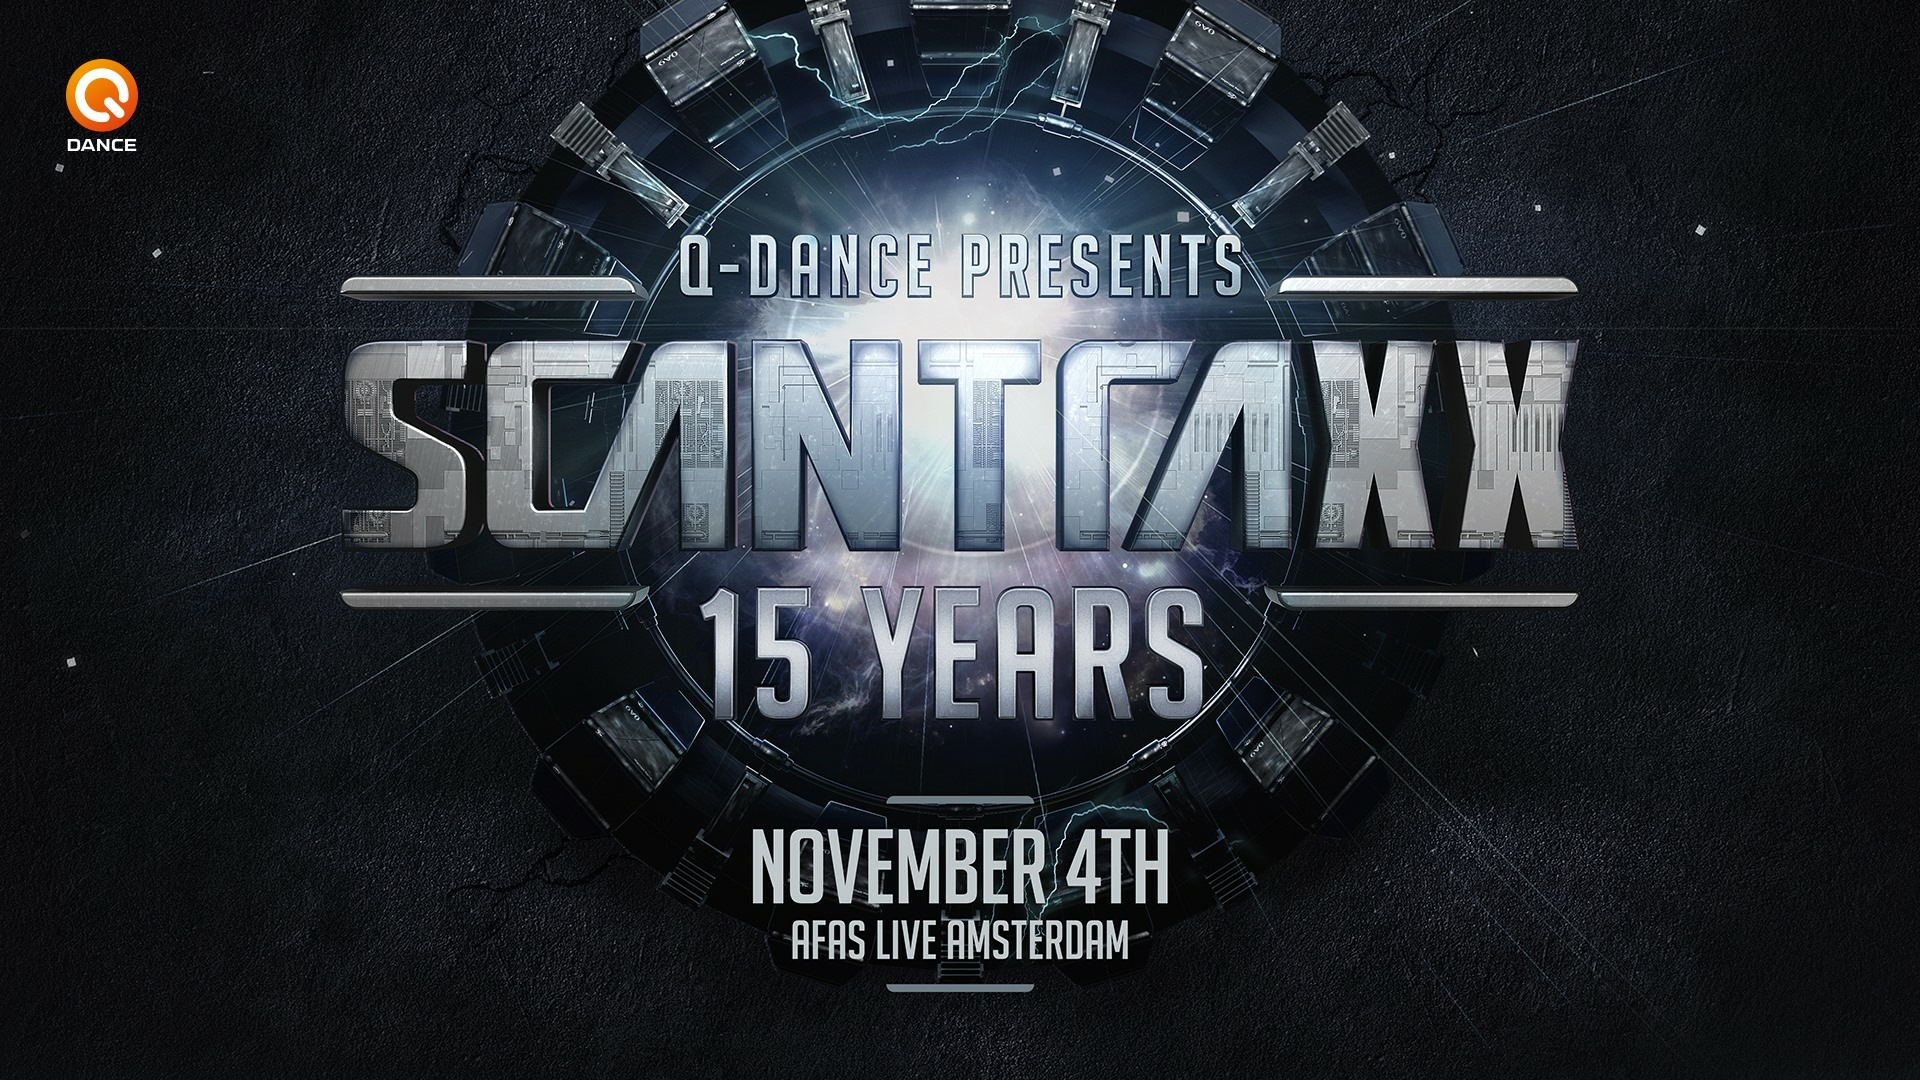 Scantraxx 15 Years 2017